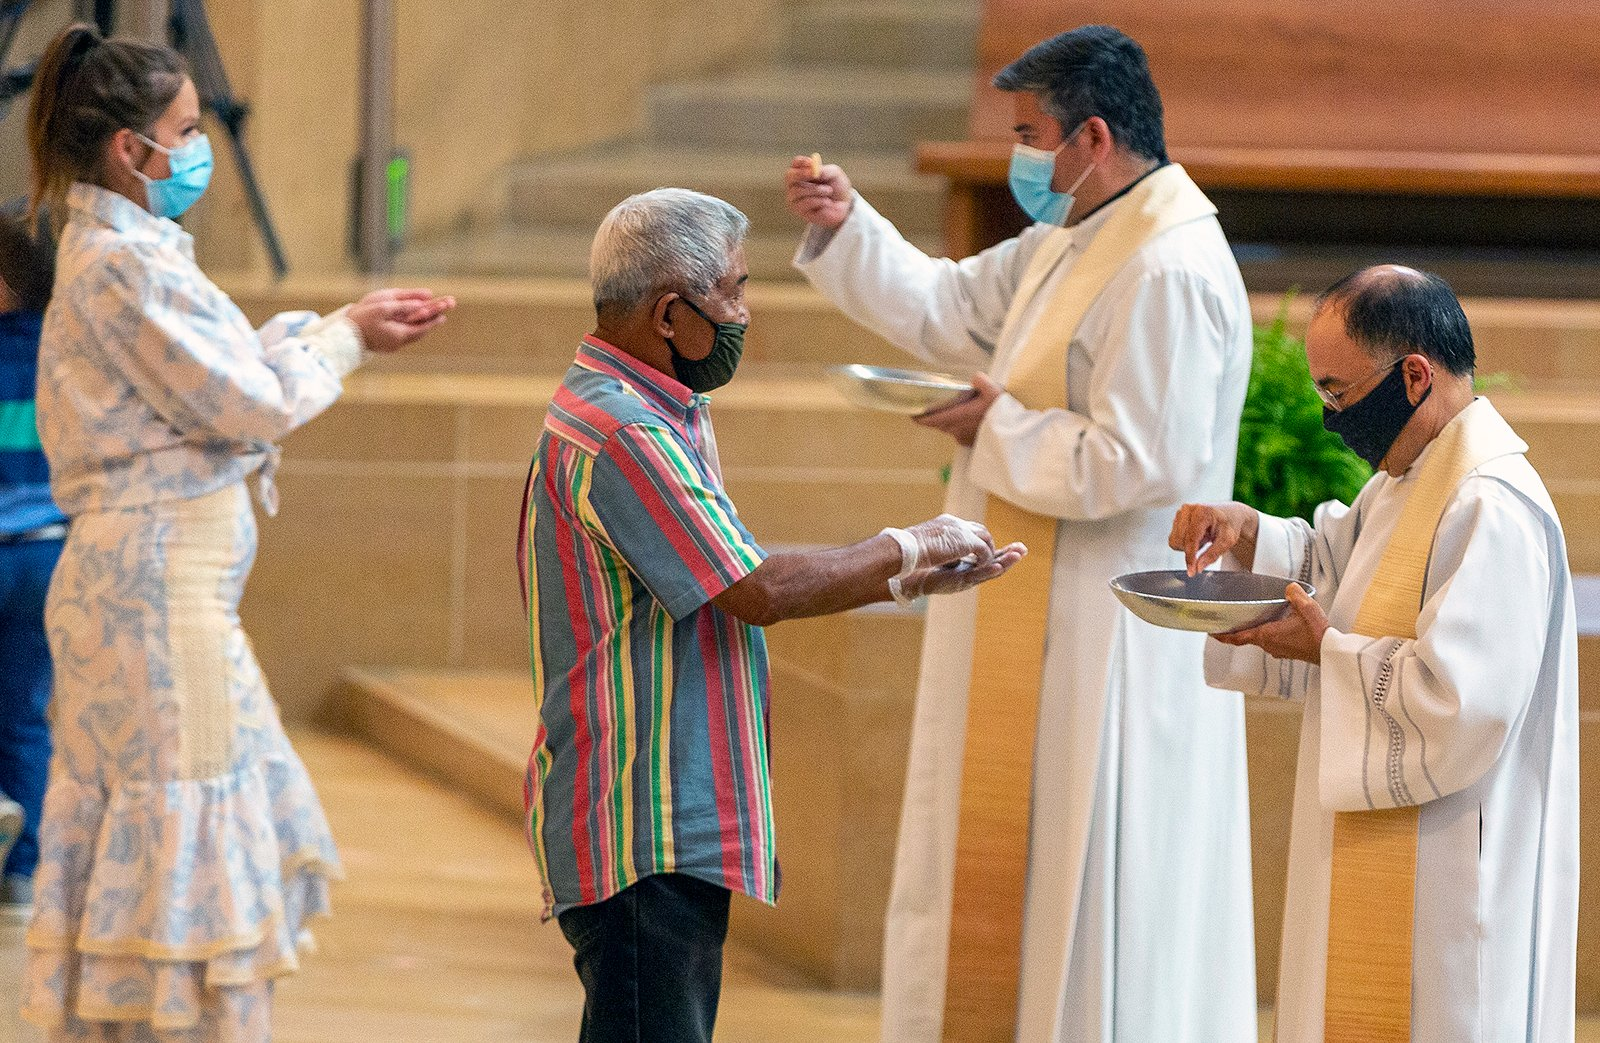 The faithful wear masks and some wear gloves as they receive Communion at the first English Mass with faithful present at the Cathedral of Our Lady of the Angels in downtown Los Angeles, Sunday, June 7, 2020. (AP Photo/Damian Dovarganes)